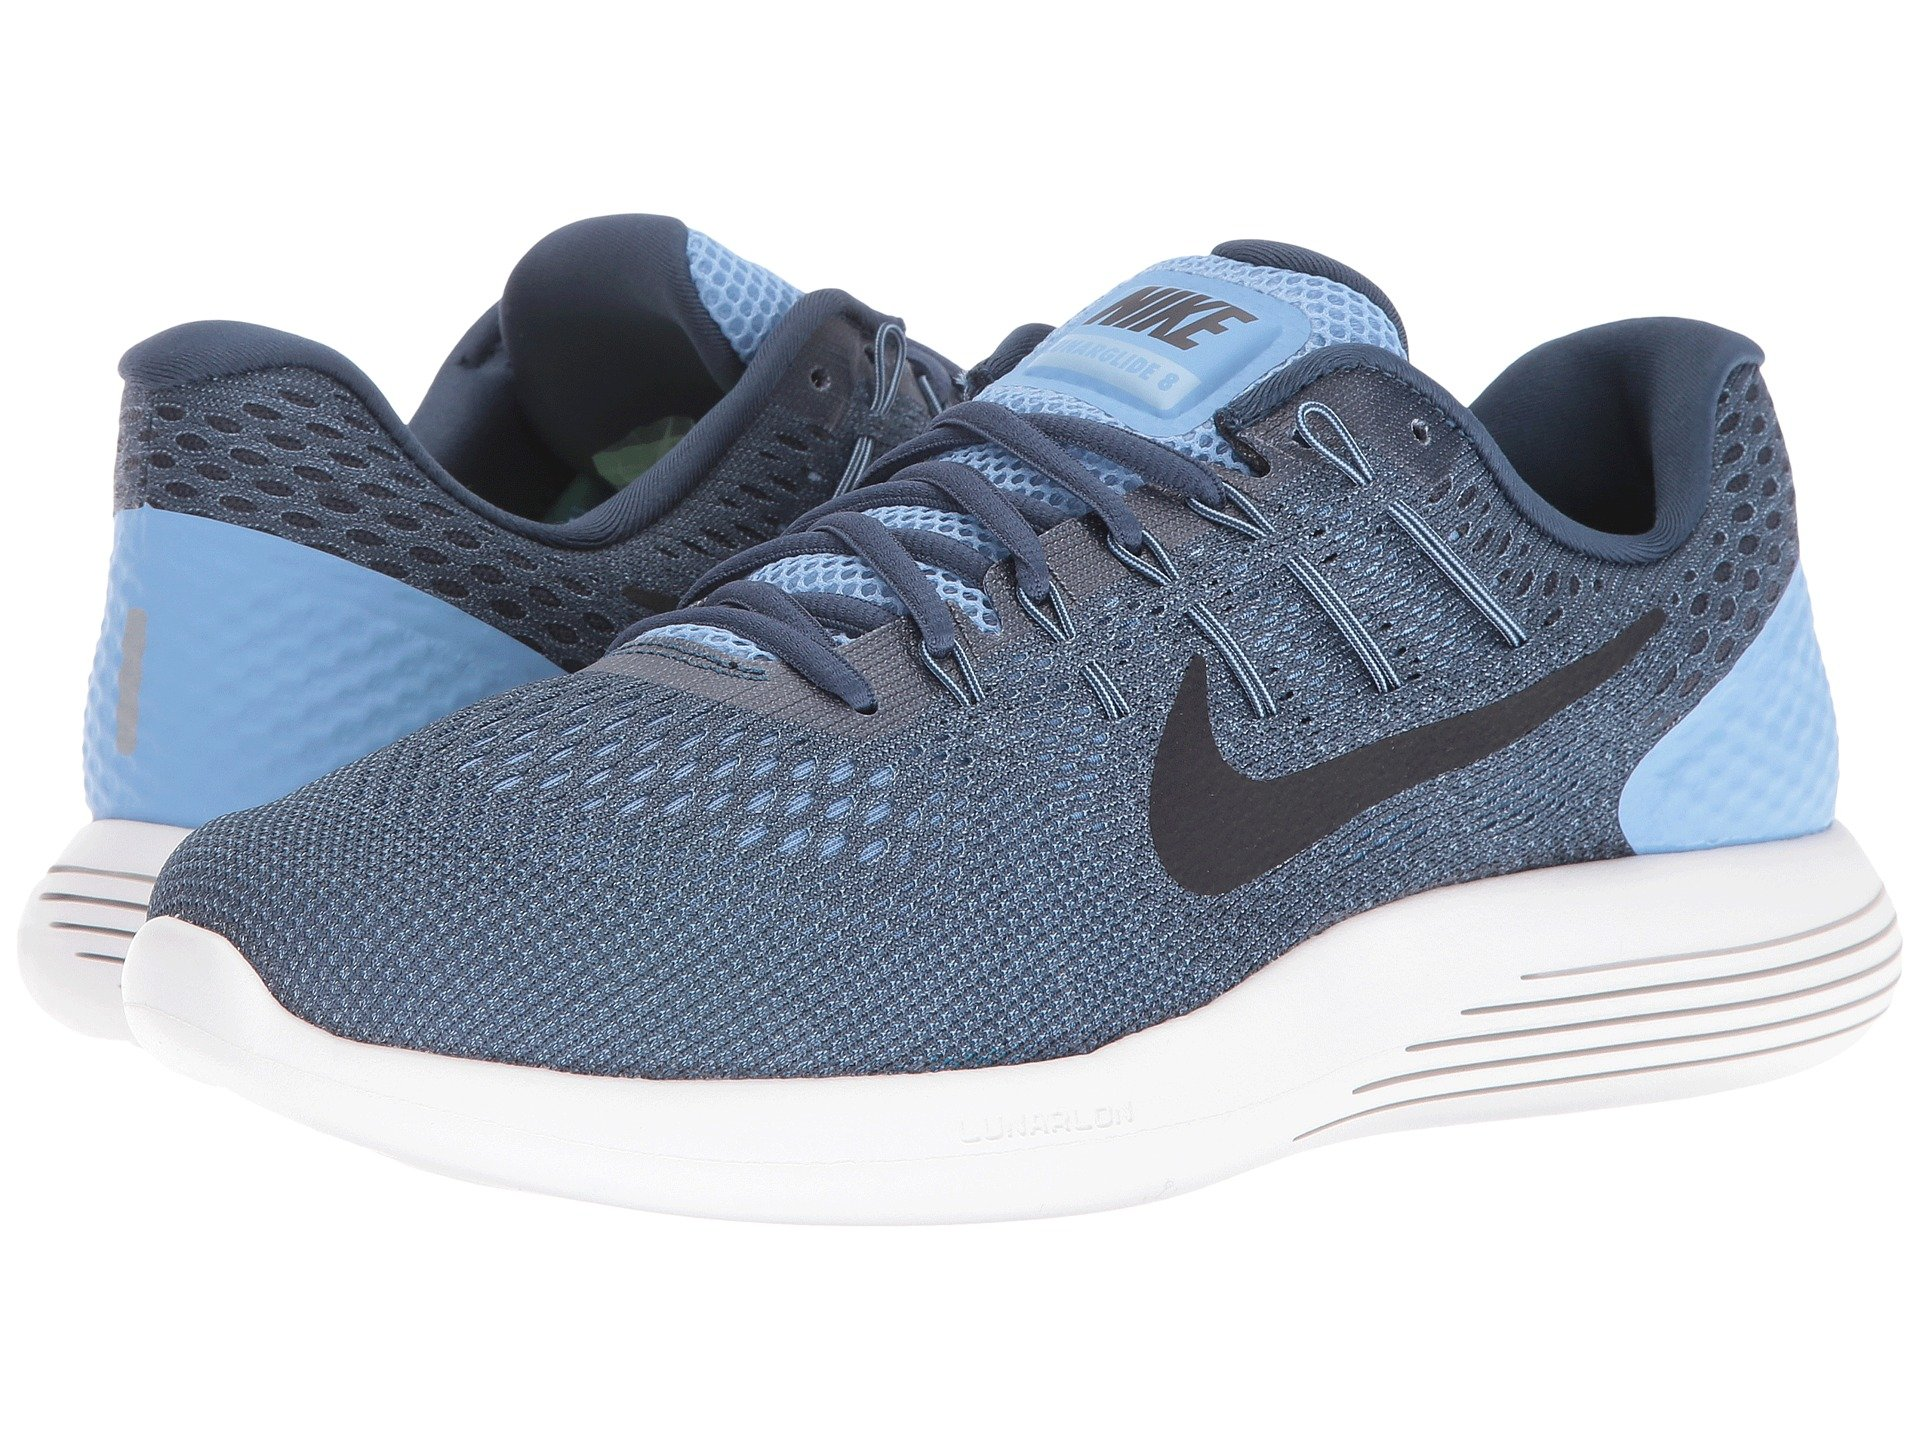 detailed look 9cb9f 26a6a ... australia galleon nike mens lunarglide 8 light blue black squadron blue  6 m us 9dd25 4aeed